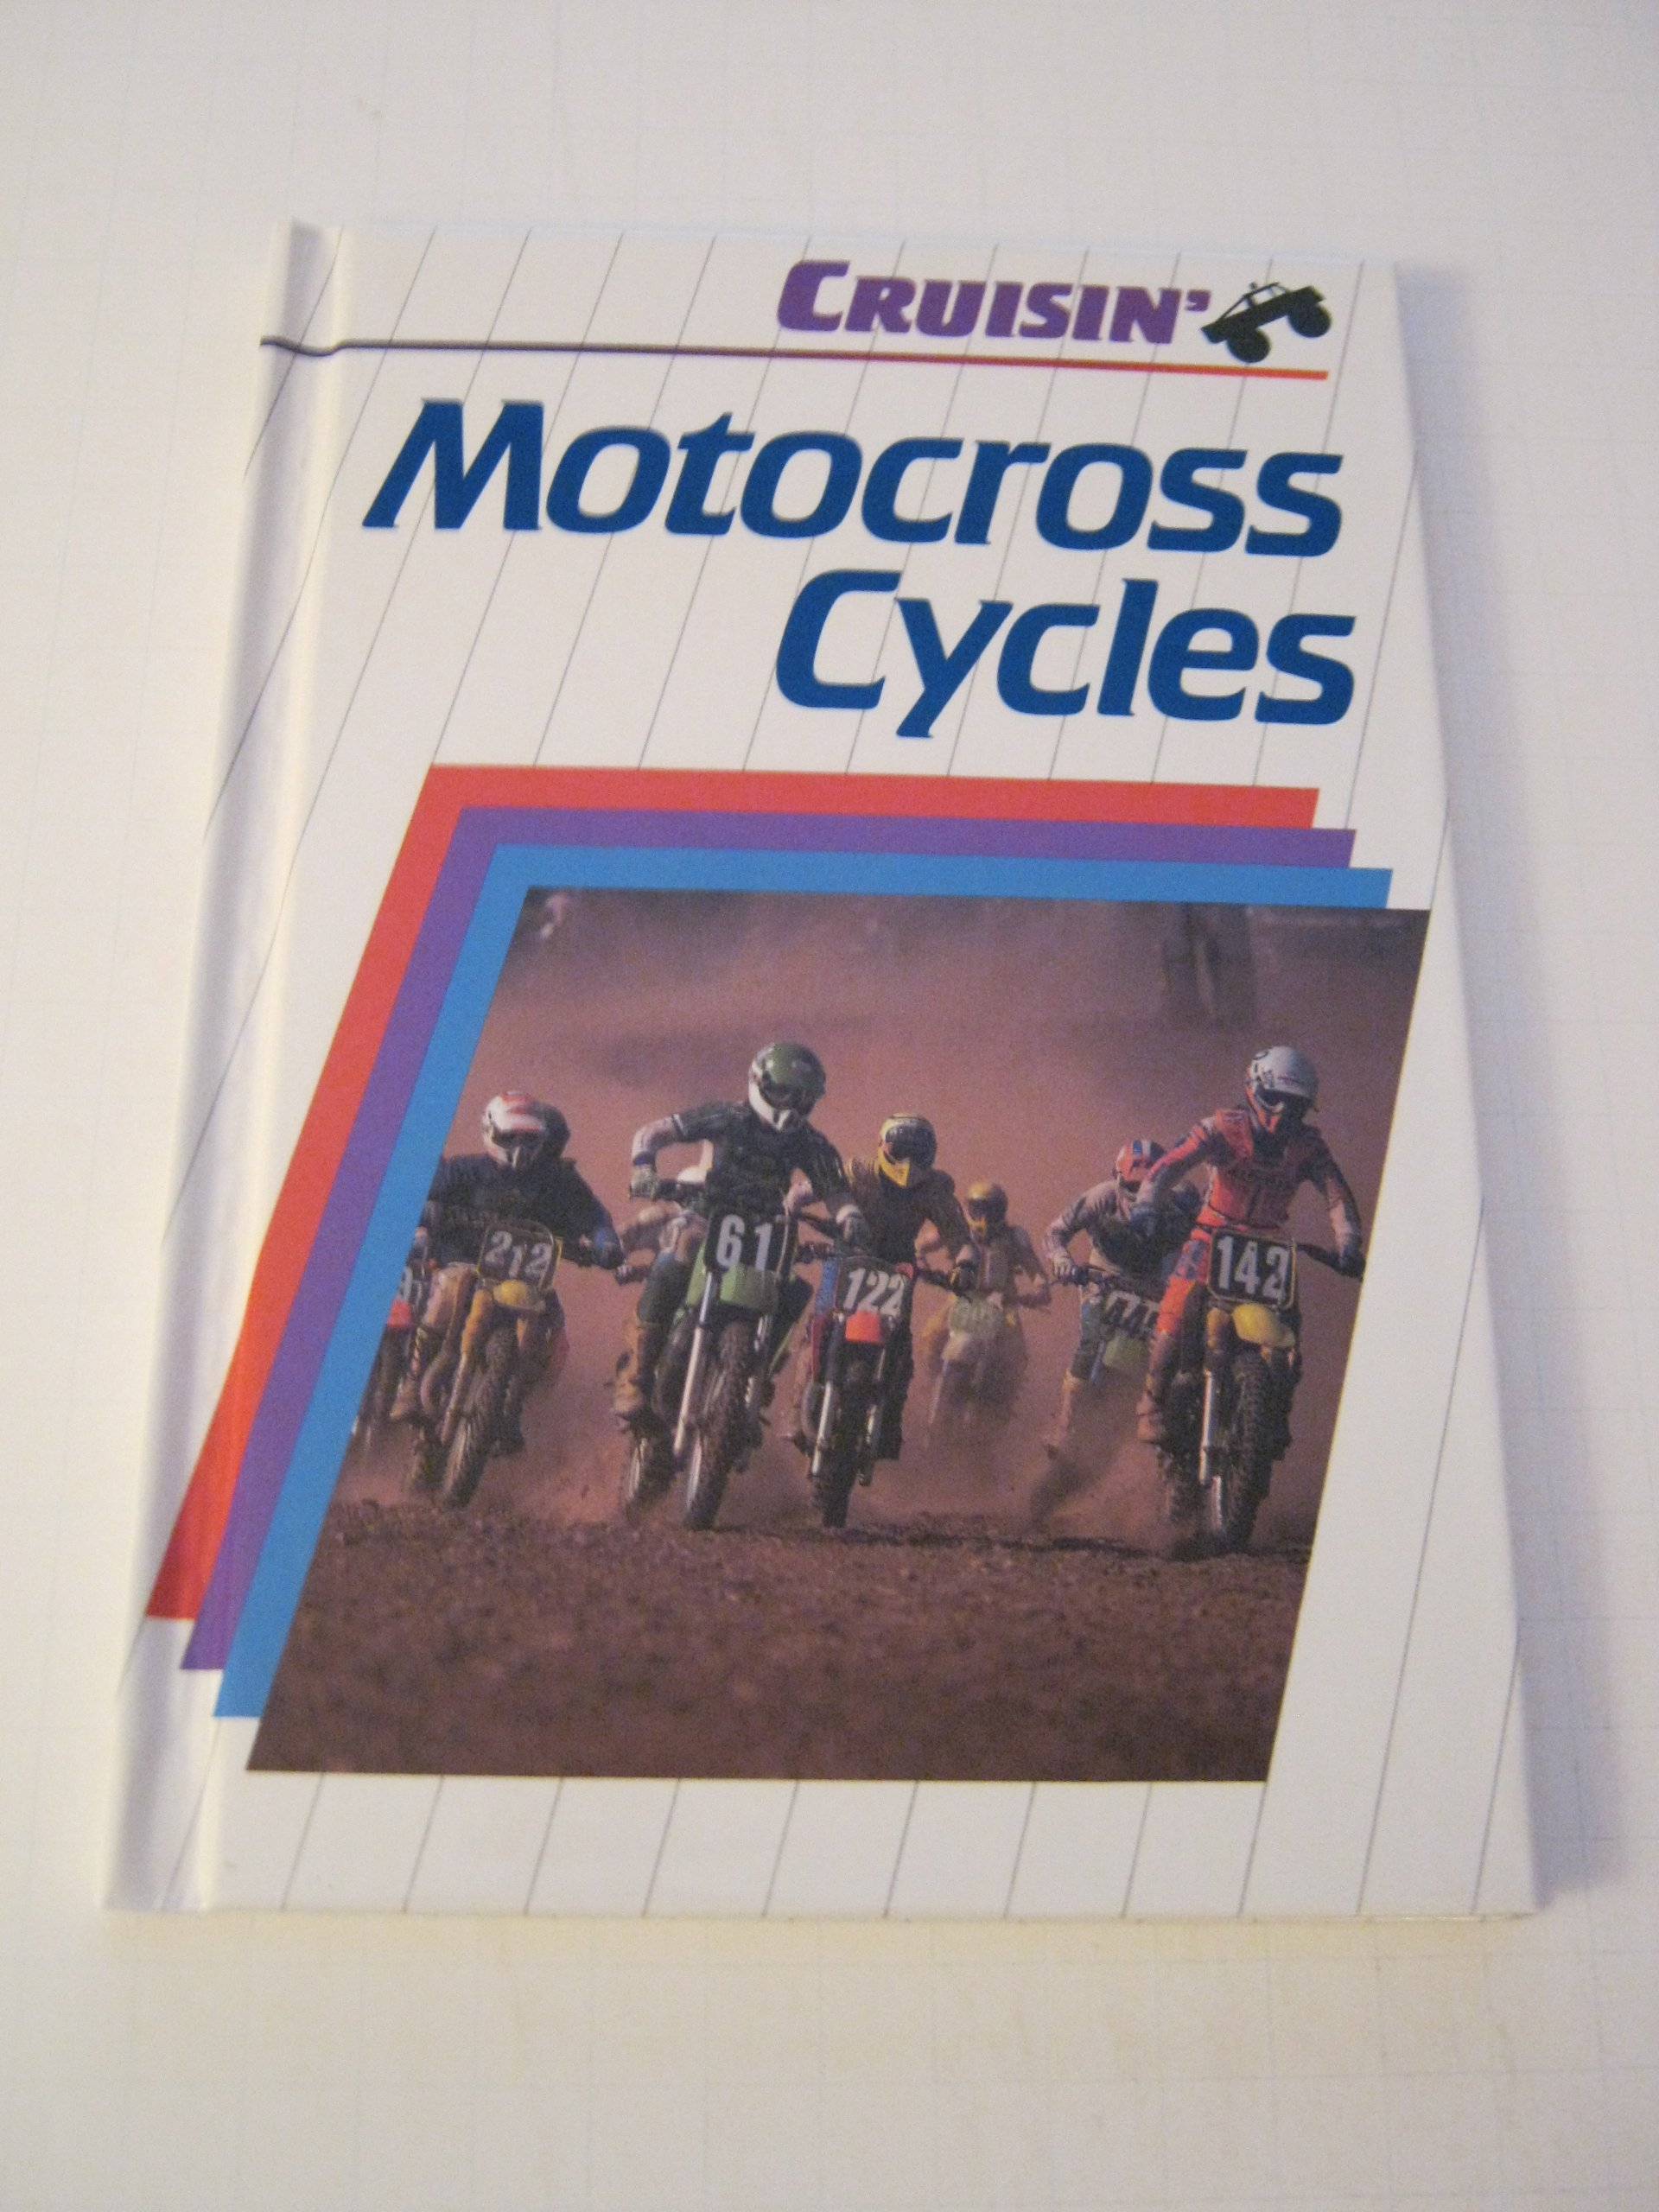 Motocross Cycles (Cruisin')